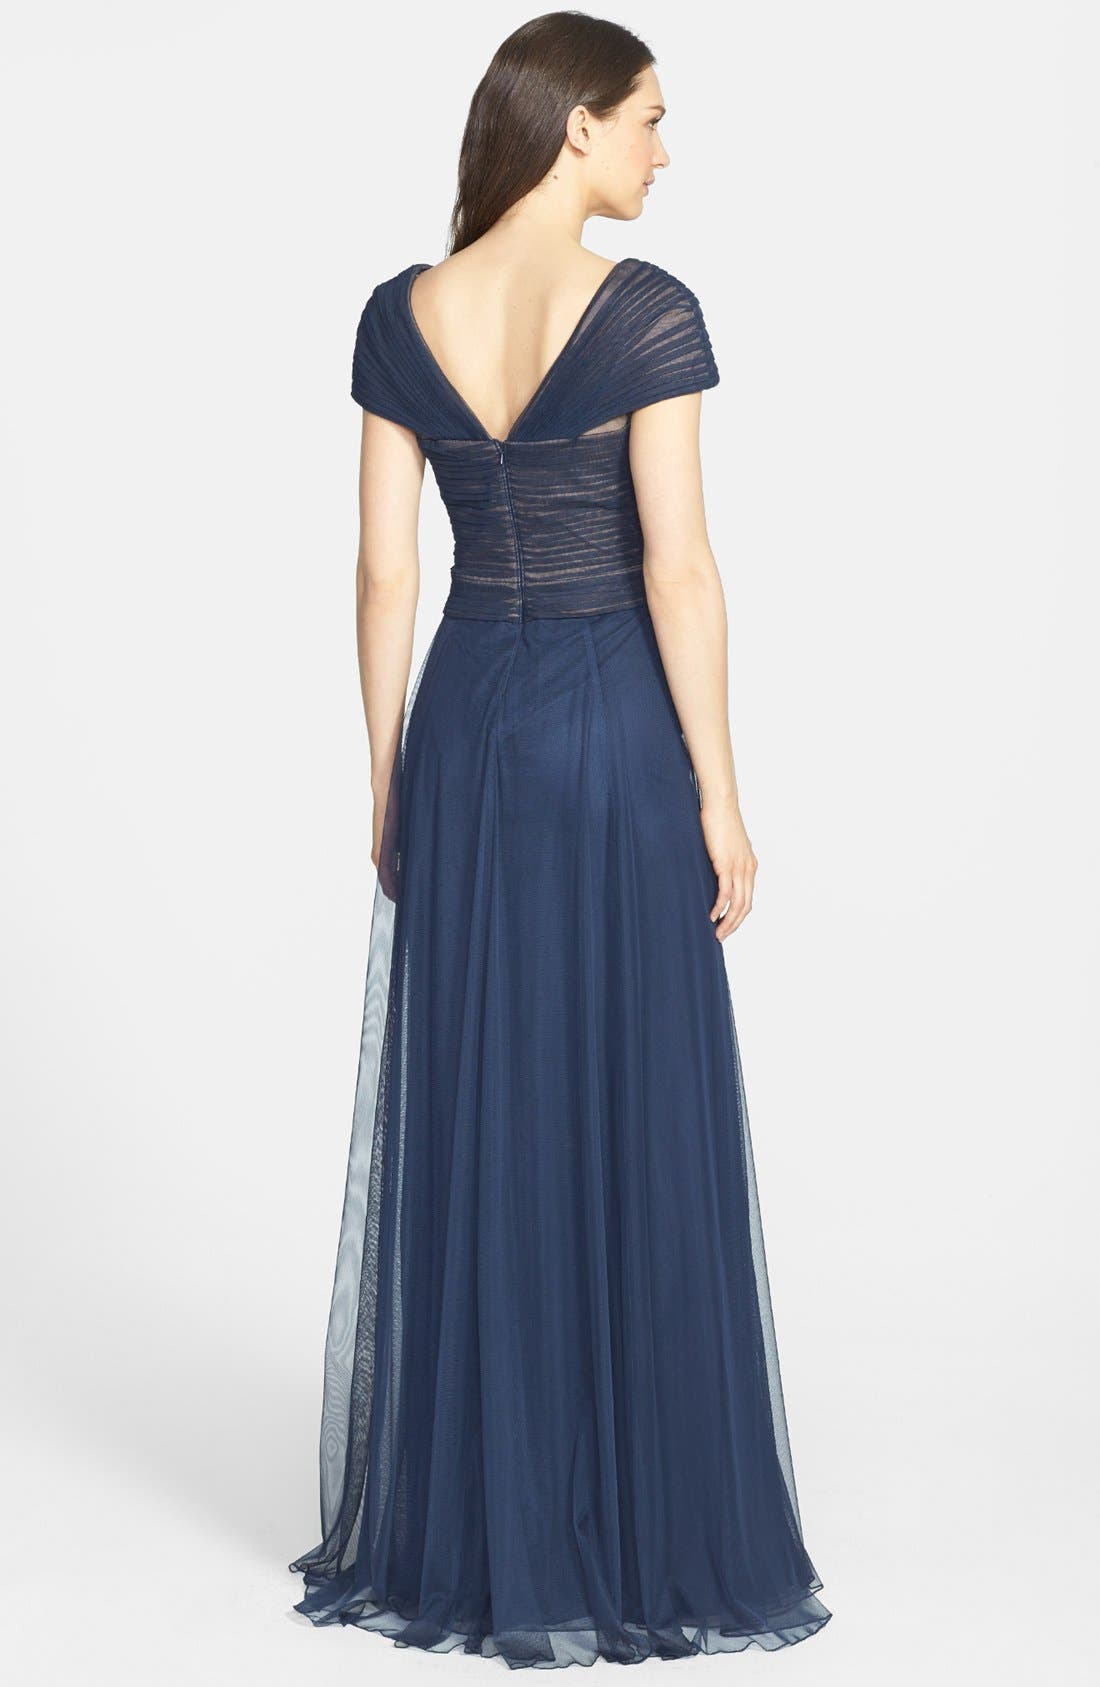 Portrait Collar Pleated Mesh Gown,                             Alternate thumbnail 2, color,                             Navy/ Navy